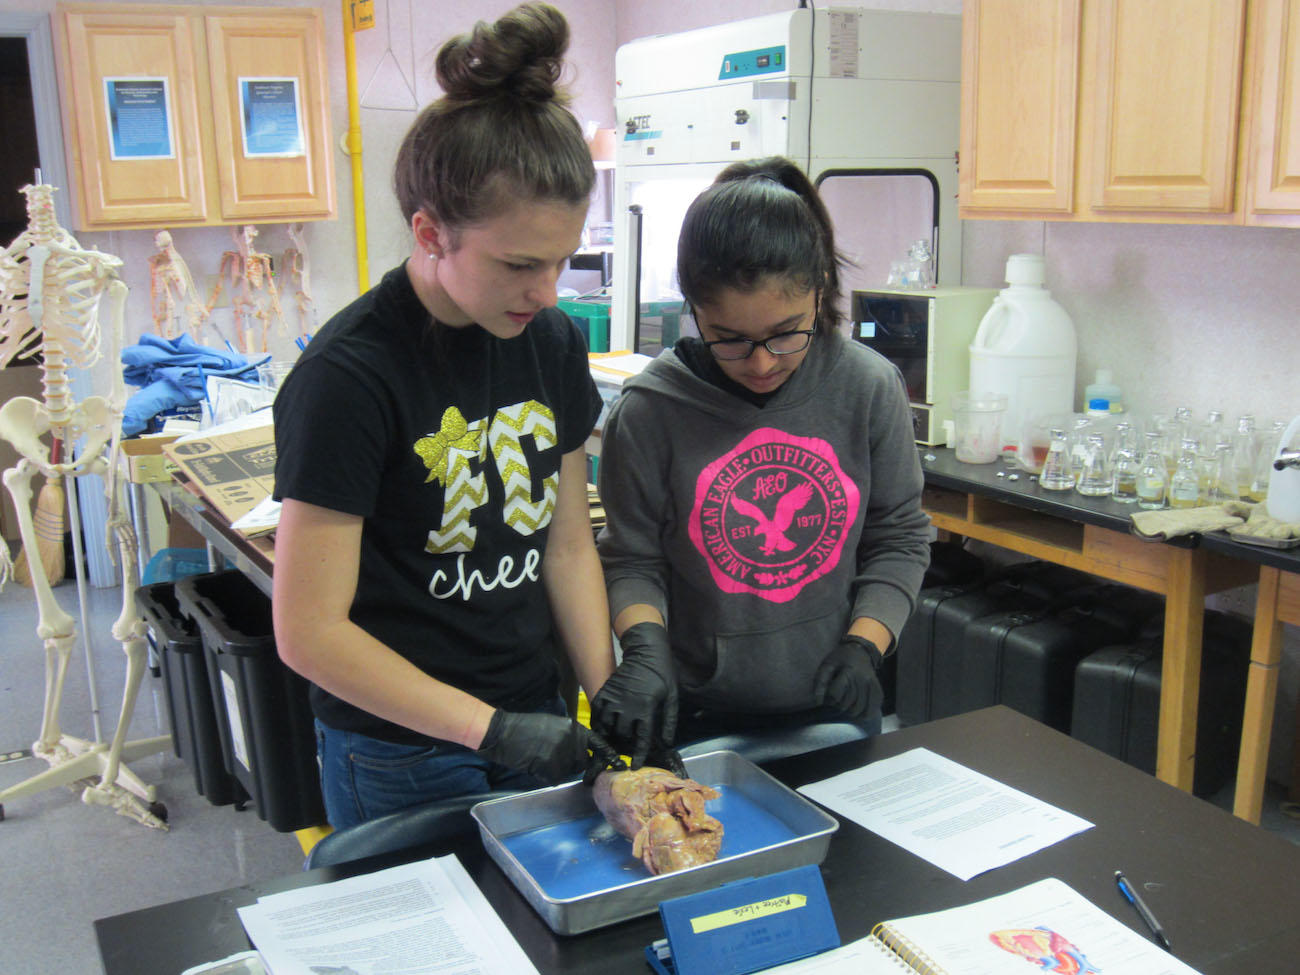 Two female students in a lab class